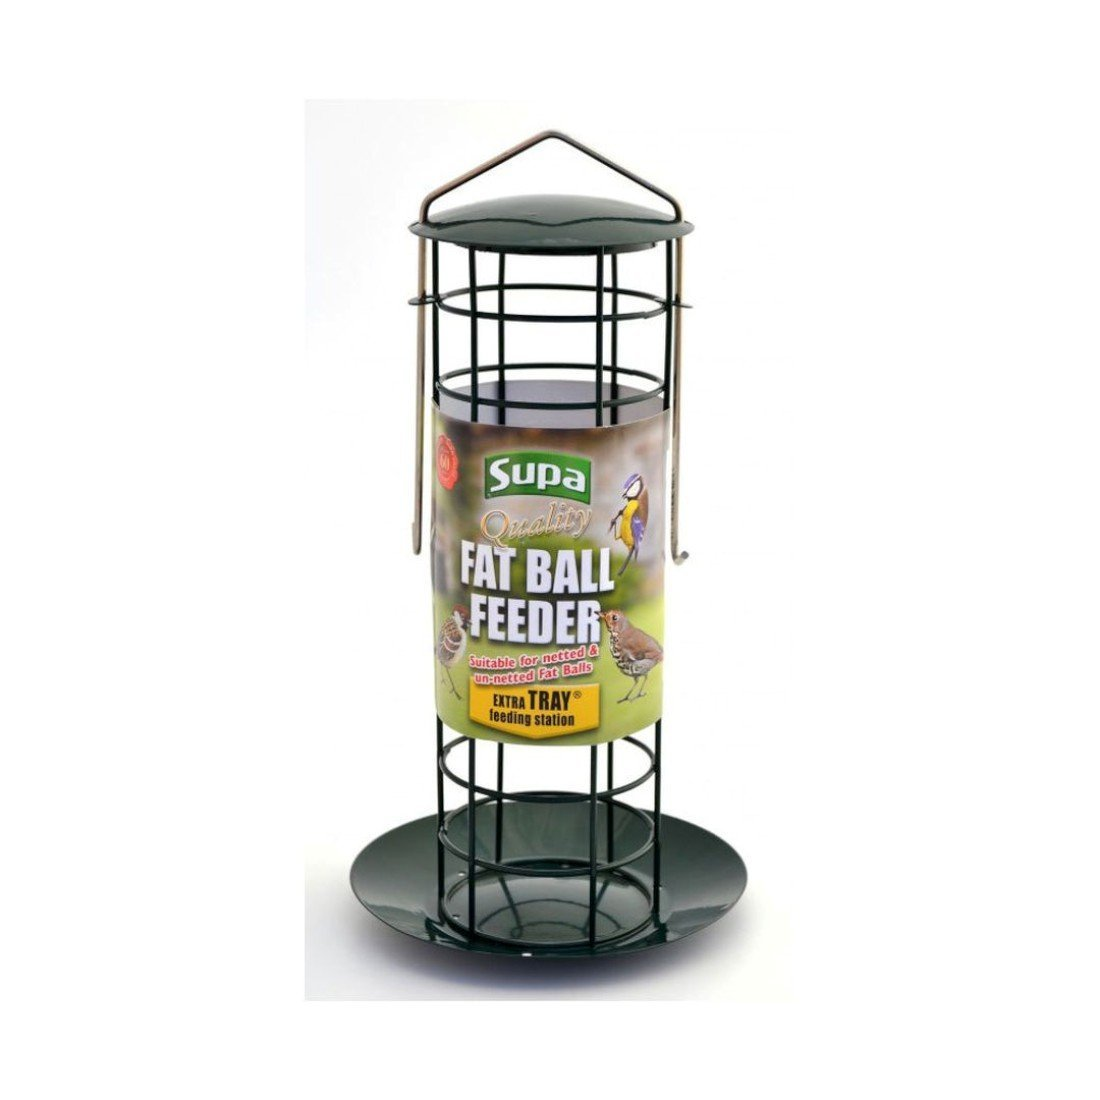 Supa Fat Ball Feeder & Tray sgl